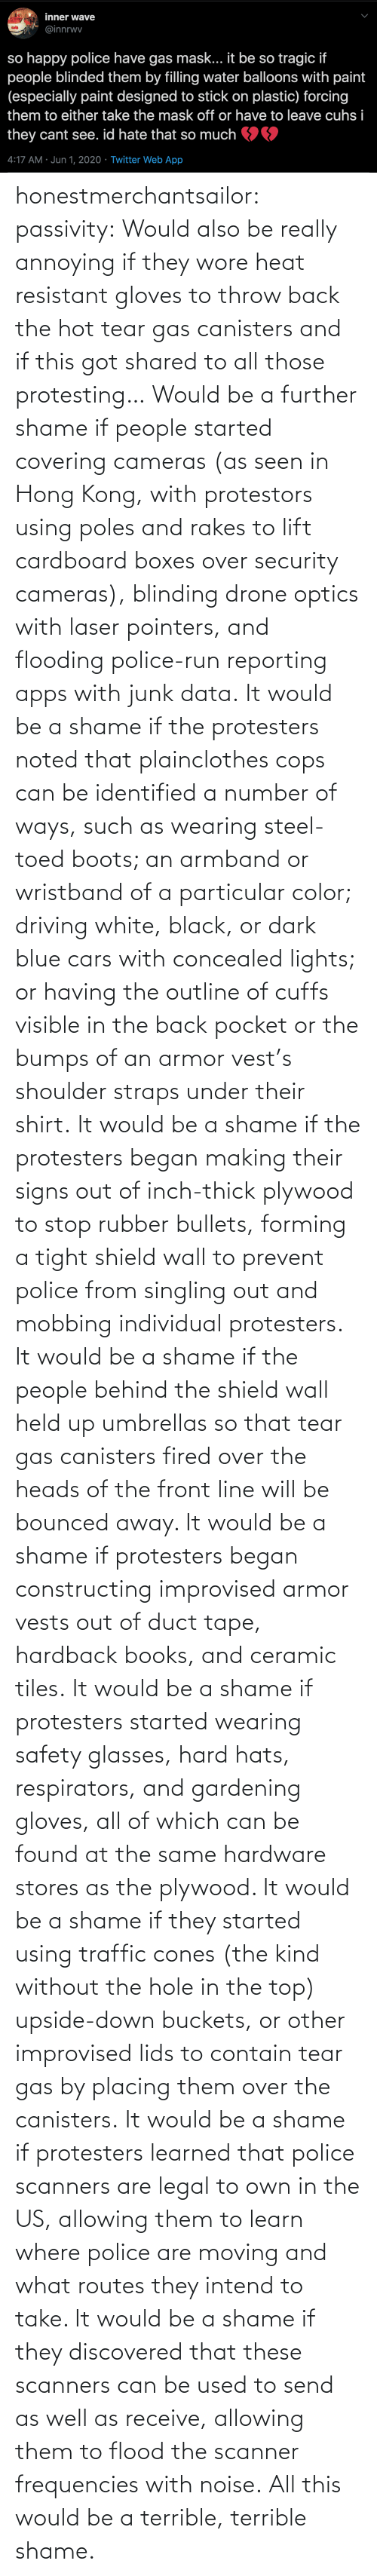 used: honestmerchantsailor:  passivity: Would also be really annoying if they wore heat resistant gloves to throw back the hot tear gas canisters and if this got shared to all those protesting… Would be a further shame if people started covering cameras (as seen in Hong Kong, with protestors using poles and rakes to lift cardboard boxes over security cameras), blinding drone optics with laser pointers, and flooding police-run reporting apps with junk data. It would be a shame if the protesters noted that plainclothes cops can be identified a number of ways, such as wearing steel-toed boots; an armband or wristband of a particular color; driving white, black, or dark blue cars with concealed lights; or having the outline of cuffs visible in the back pocket or the bumps of an armor vest's shoulder straps under their shirt. It would be a shame if the protesters began making their signs out of inch-thick plywood to stop rubber bullets, forming a tight shield wall to prevent police from singling out and mobbing individual protesters. It would be a shame if the people behind the shield wall held up umbrellas so that tear gas canisters fired over the heads of the front line will be bounced away. It would be a shame if protesters began constructing improvised armor vests out of duct tape, hardback books, and ceramic tiles. It would be a shame if protesters started wearing safety glasses, hard hats, respirators, and gardening gloves, all of which can be found at the same hardware stores as the plywood. It would be a shame if they started using traffic cones (the kind without the hole in the top) upside-down buckets, or other improvised lids to contain tear gas by placing them over the canisters. It would be a shame if protesters learned that police scanners are legal to own in the US, allowing them to learn where police are moving and what routes they intend to take. It would be a shame if they discovered that these scanners can be used to send as well as receive, allowing them to flood the scanner frequencies with noise. All this would be a terrible, terrible shame.